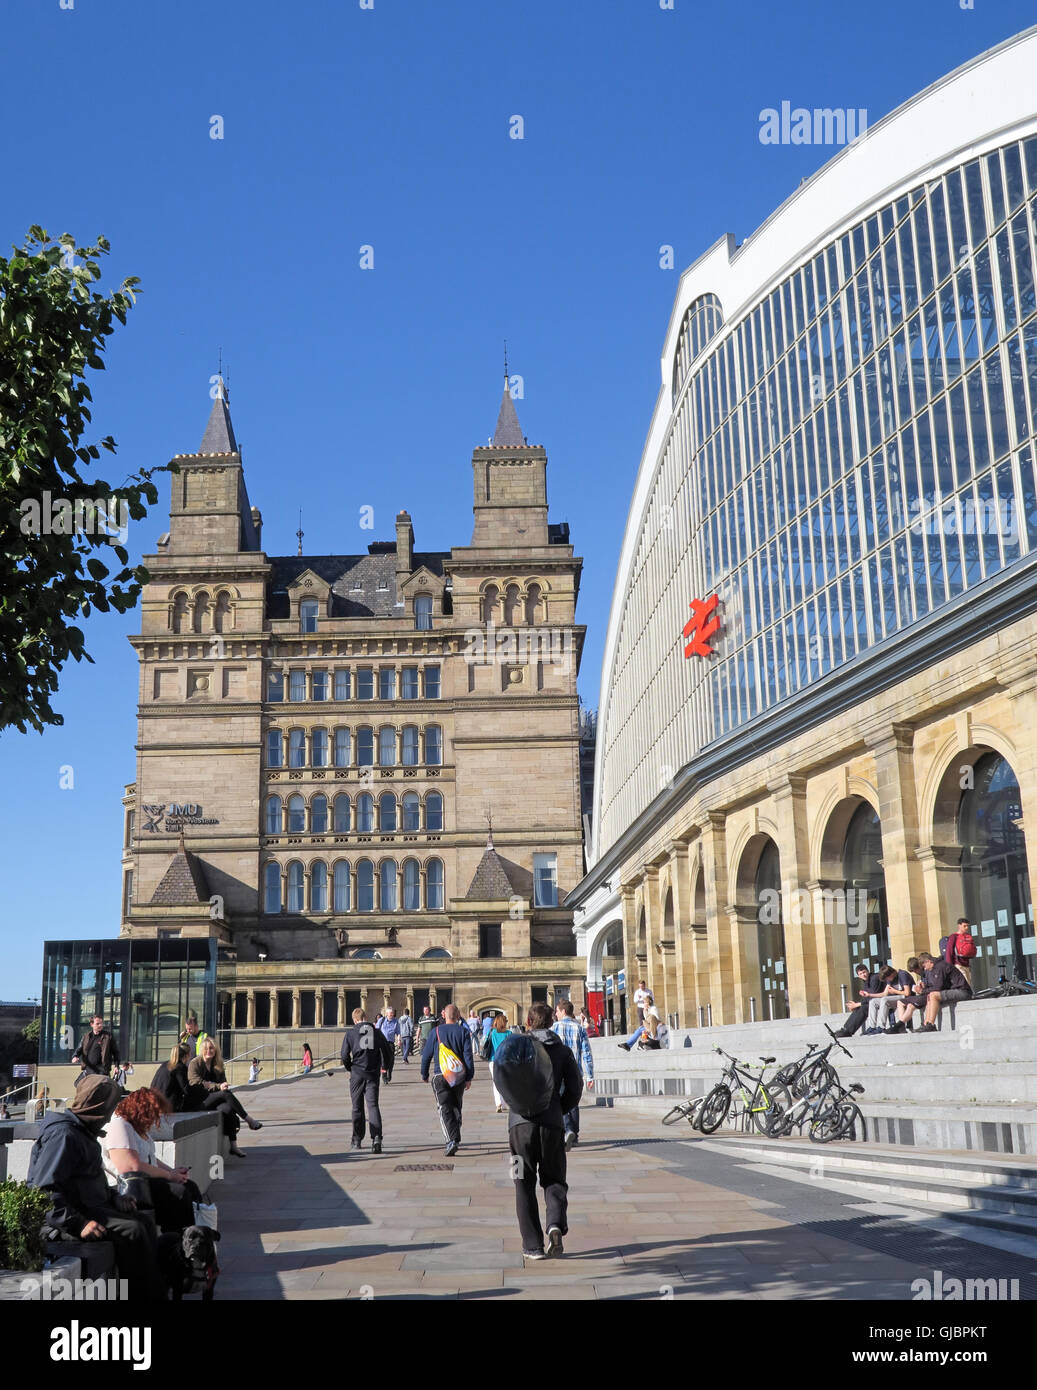 Approach to Lime Street mainline railway station, Liverpool, North West England, L1 1JD - Stock Image